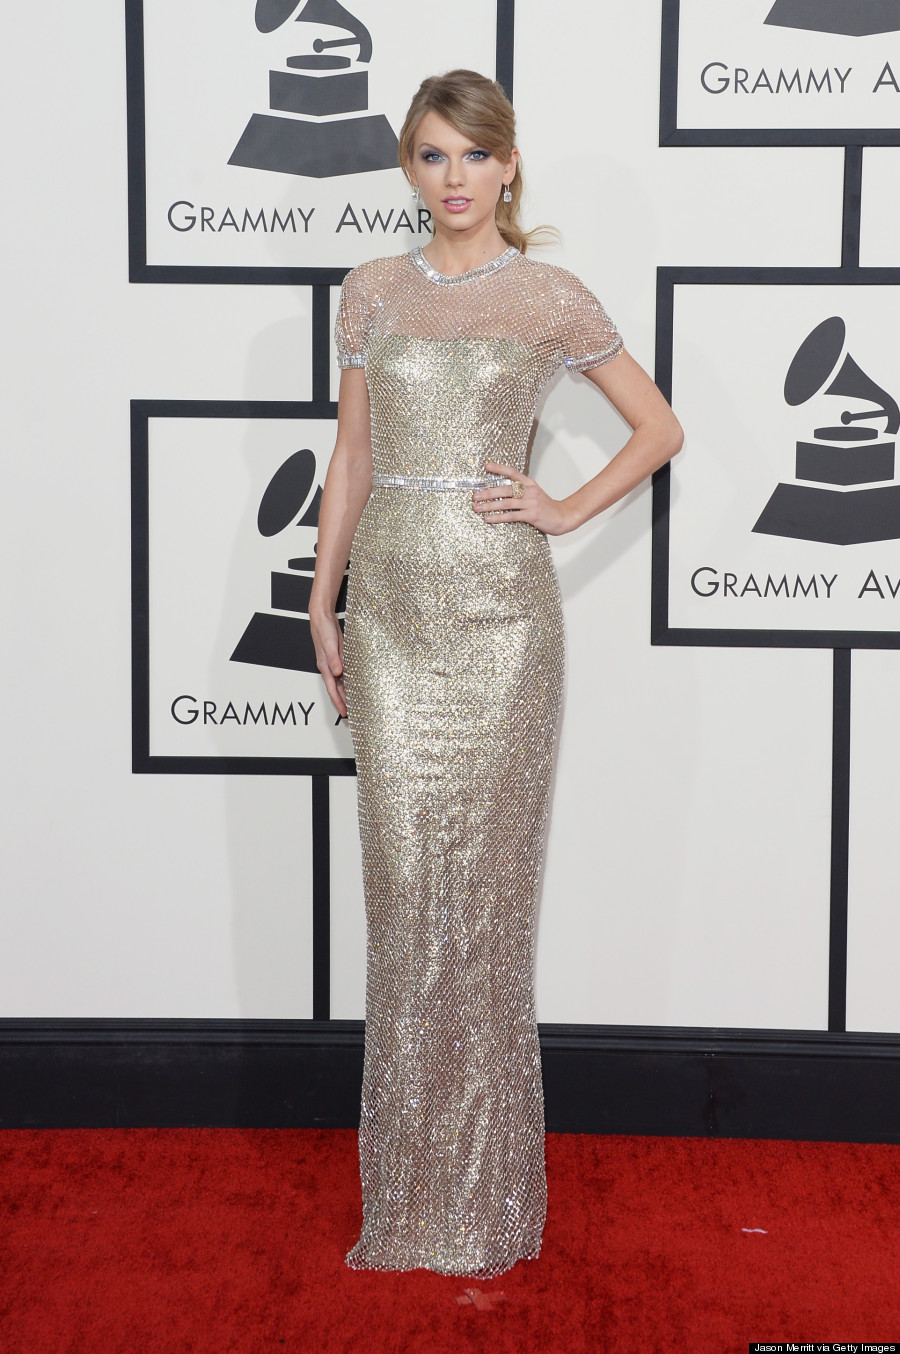 Taylor Swift's Grammys 2014 Dress Is So Bright It Hurts ...